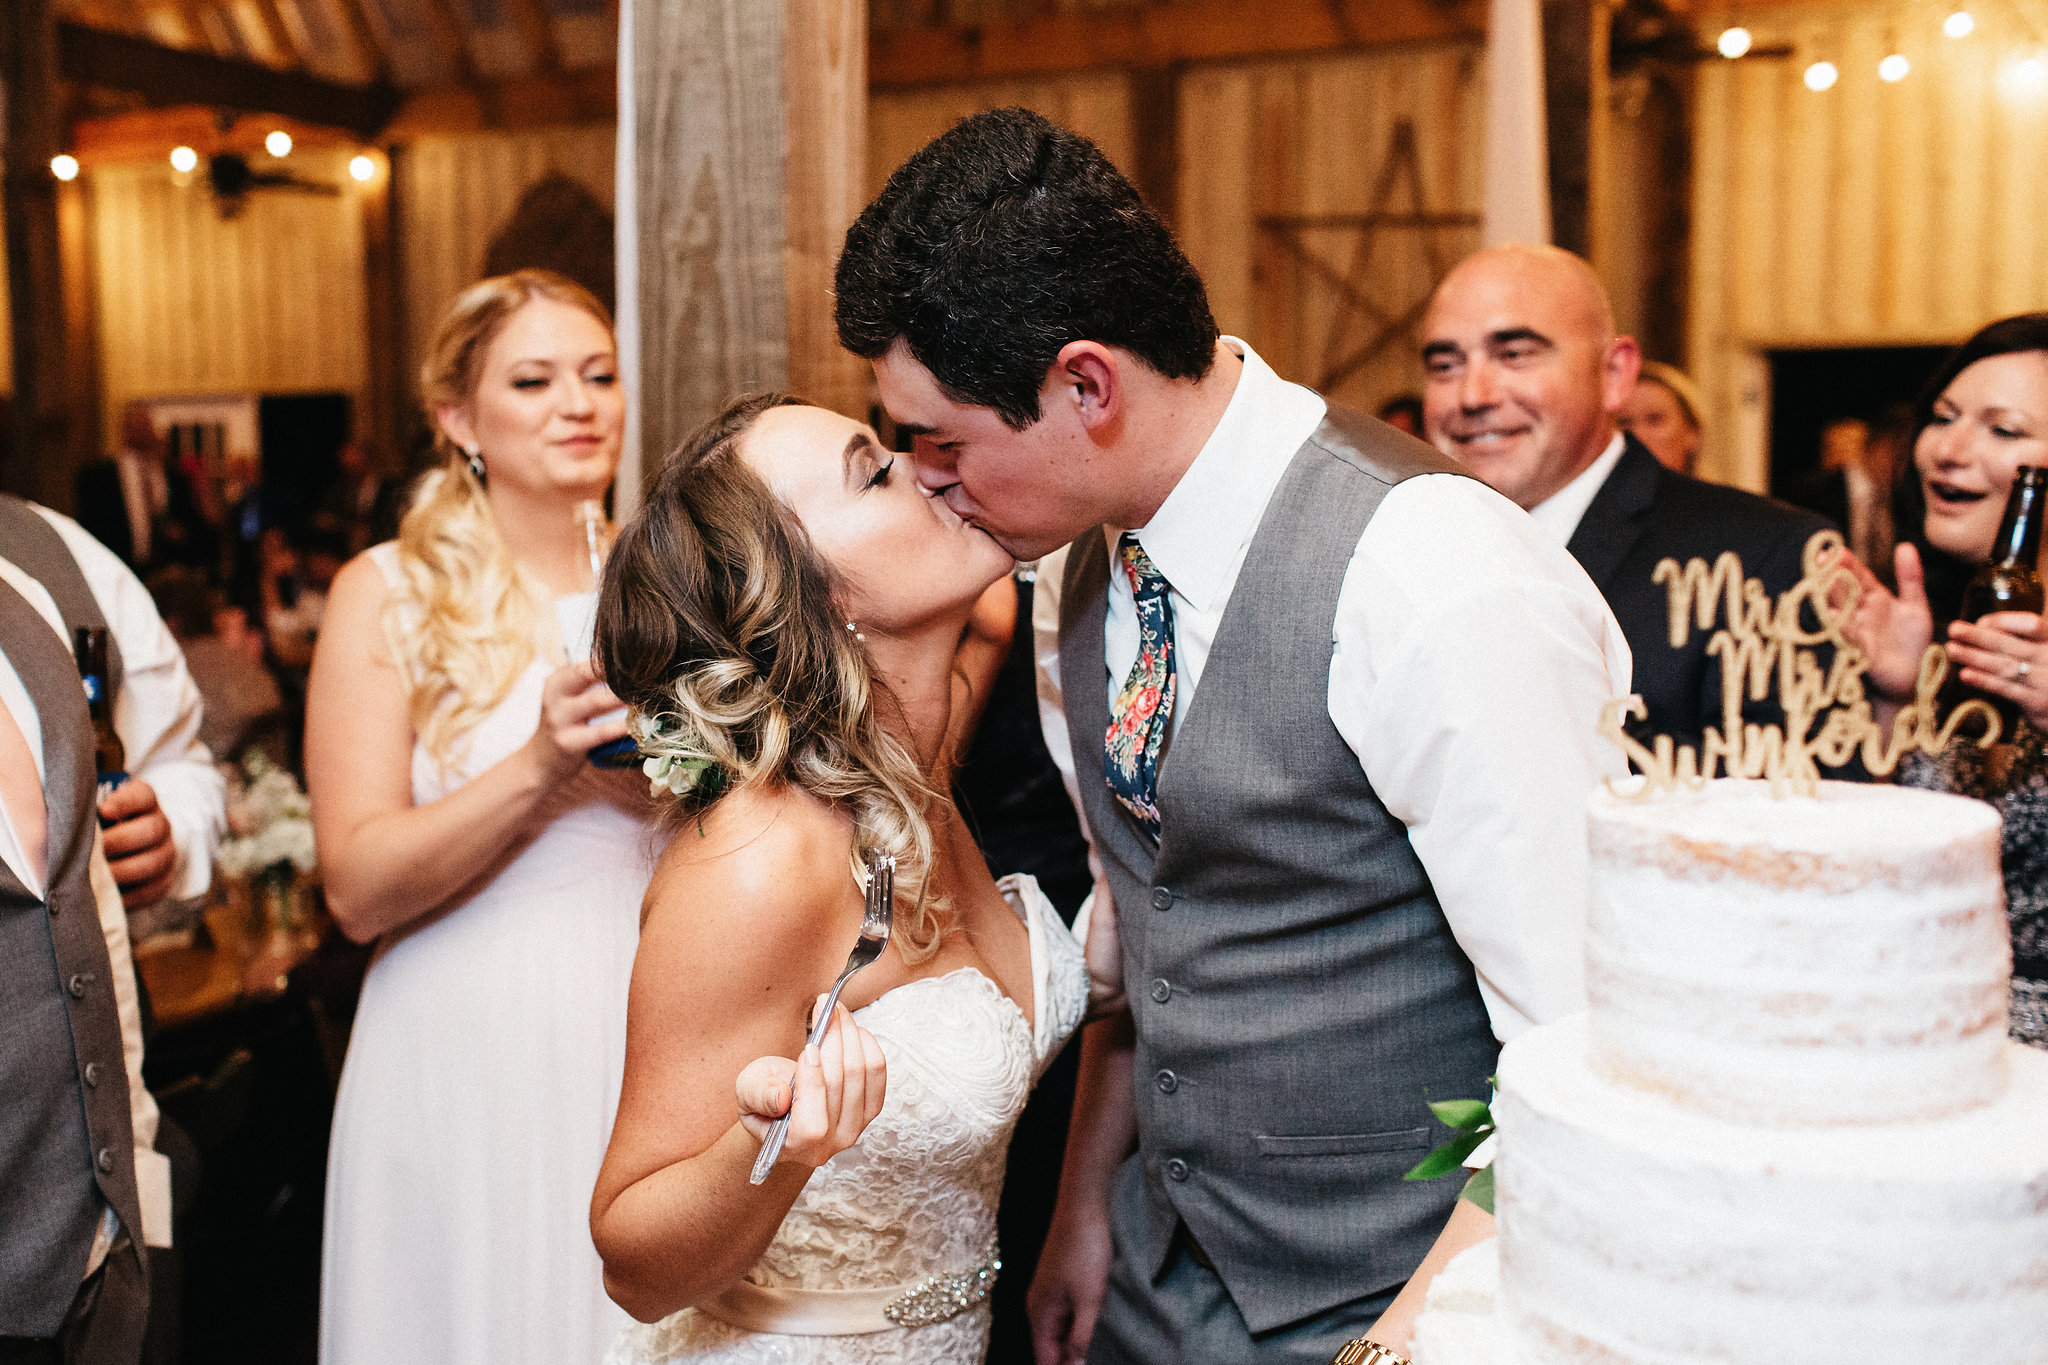 Ashley&NathanMarried2017-11-10at19.26.56PM.jpg